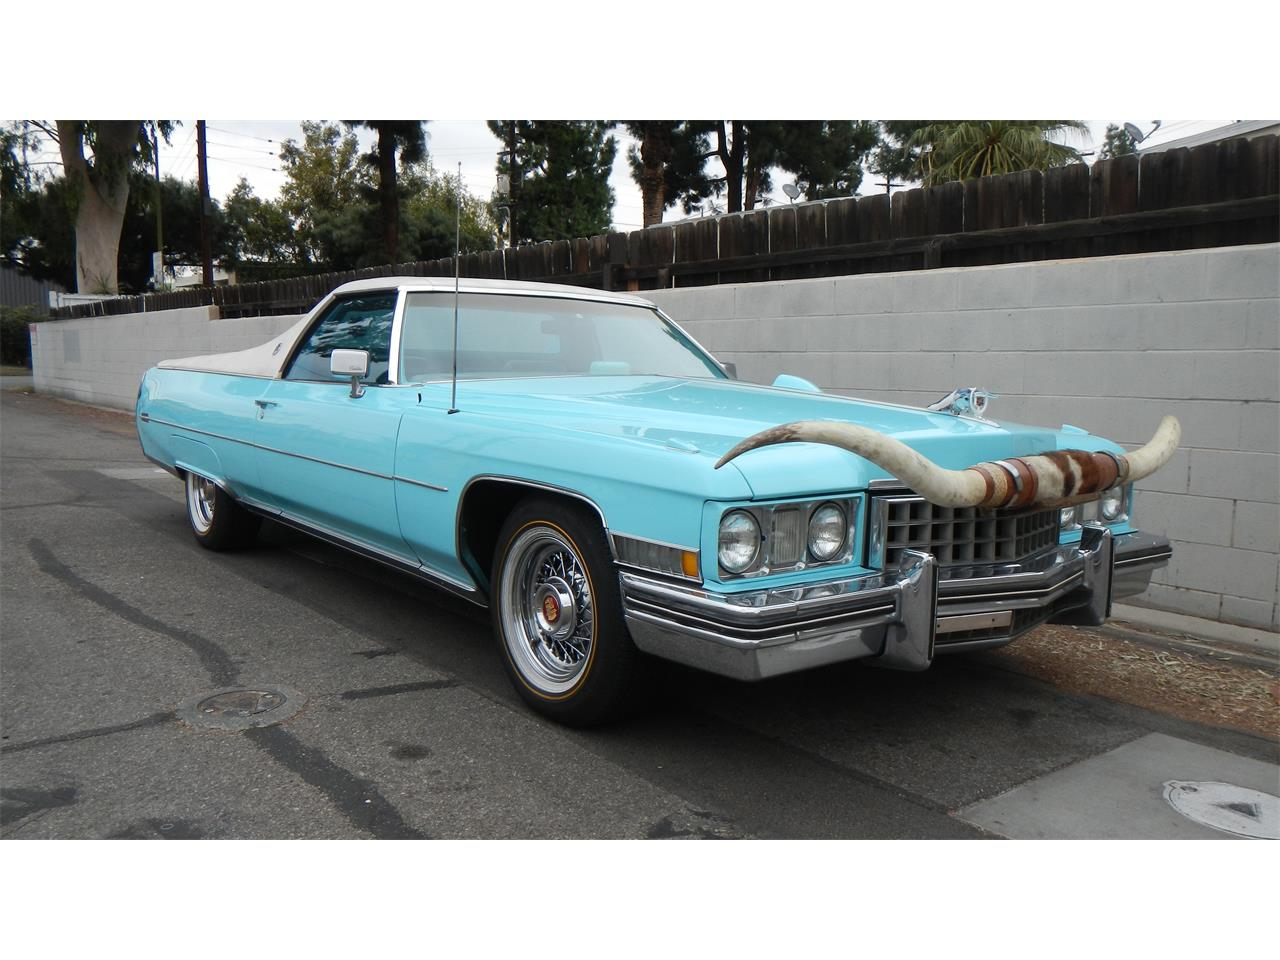 1973 Cadillac Eldorado for sale in Woodland Hills, CA – photo 25